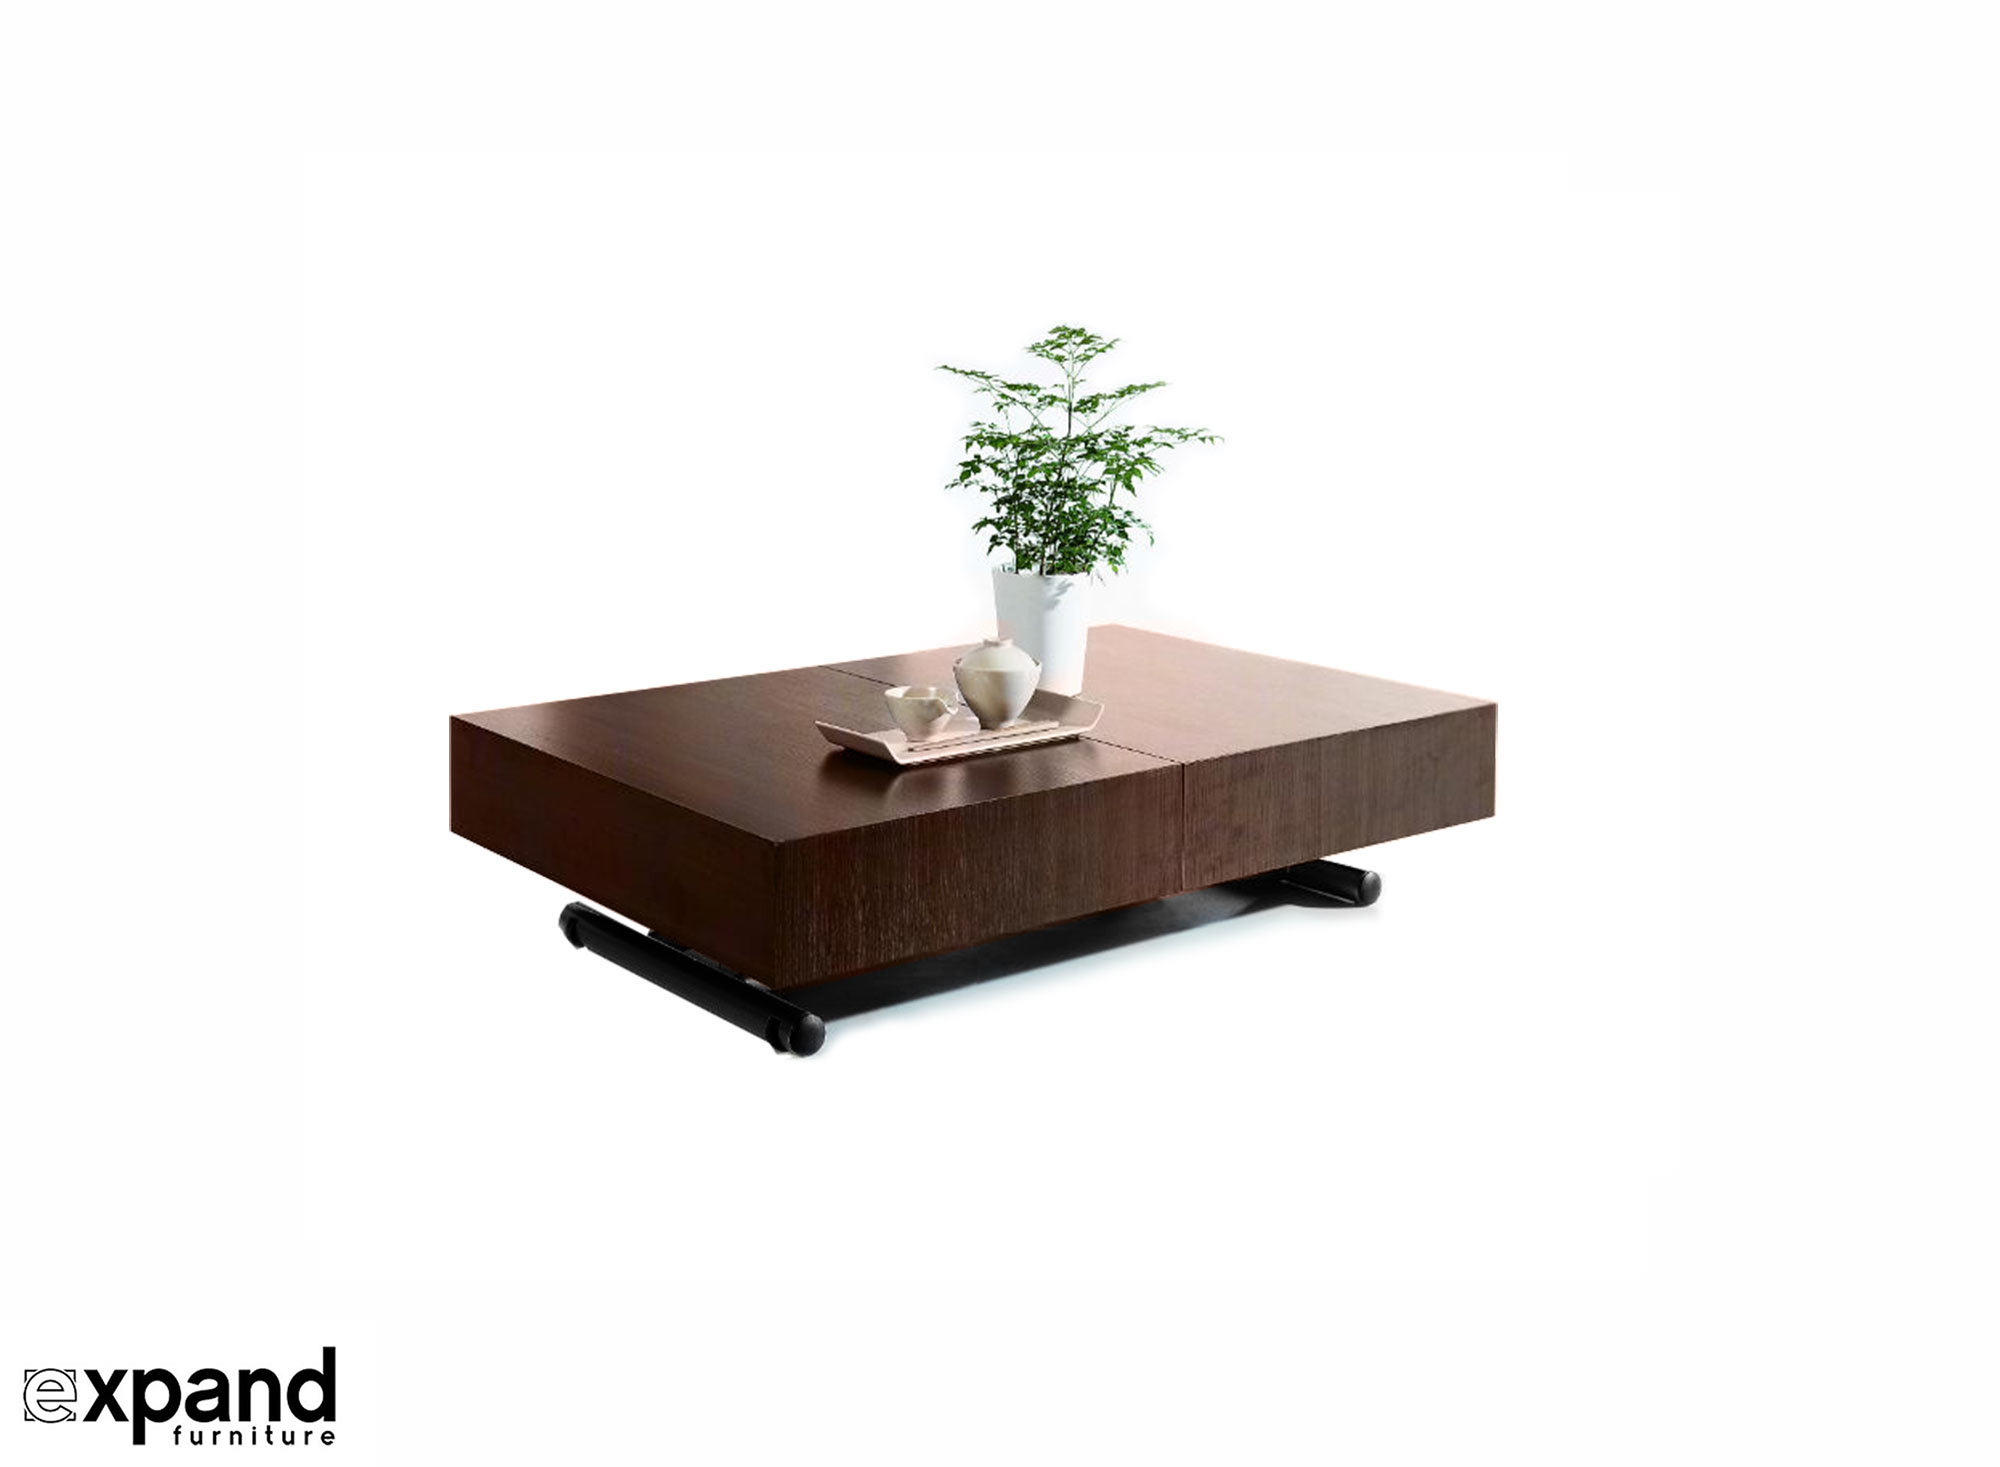 Walnut Wood Box Coffee Table With Black Legs Spacesaving